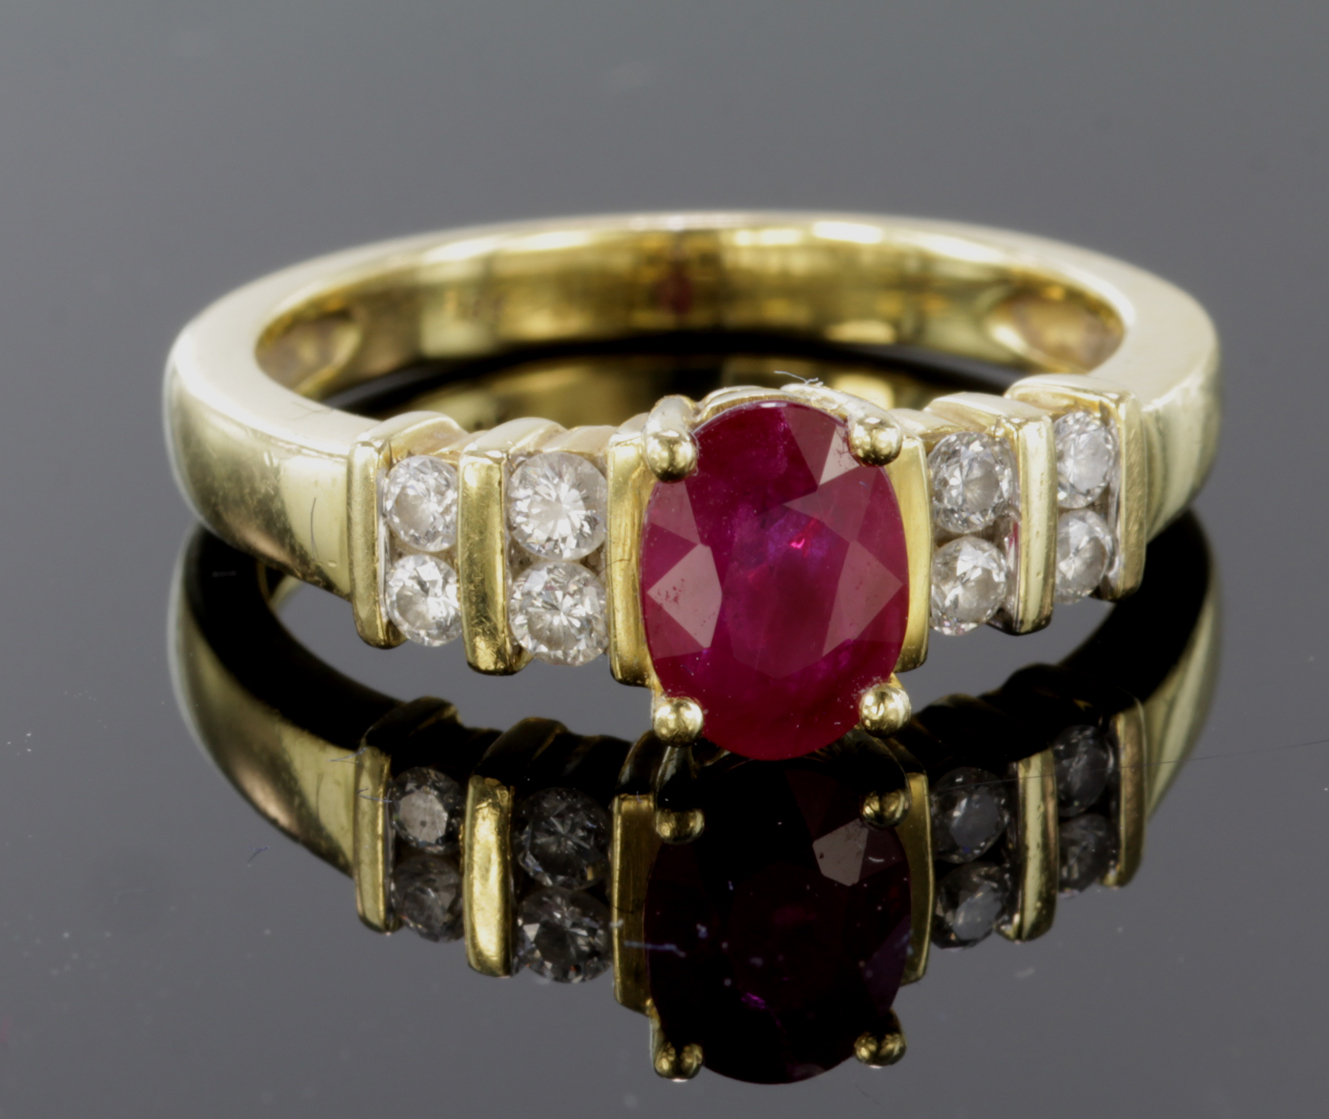 Lot 11 - 18ct Gold Ring set with Ruby and Diamonds size L weight 4.5g